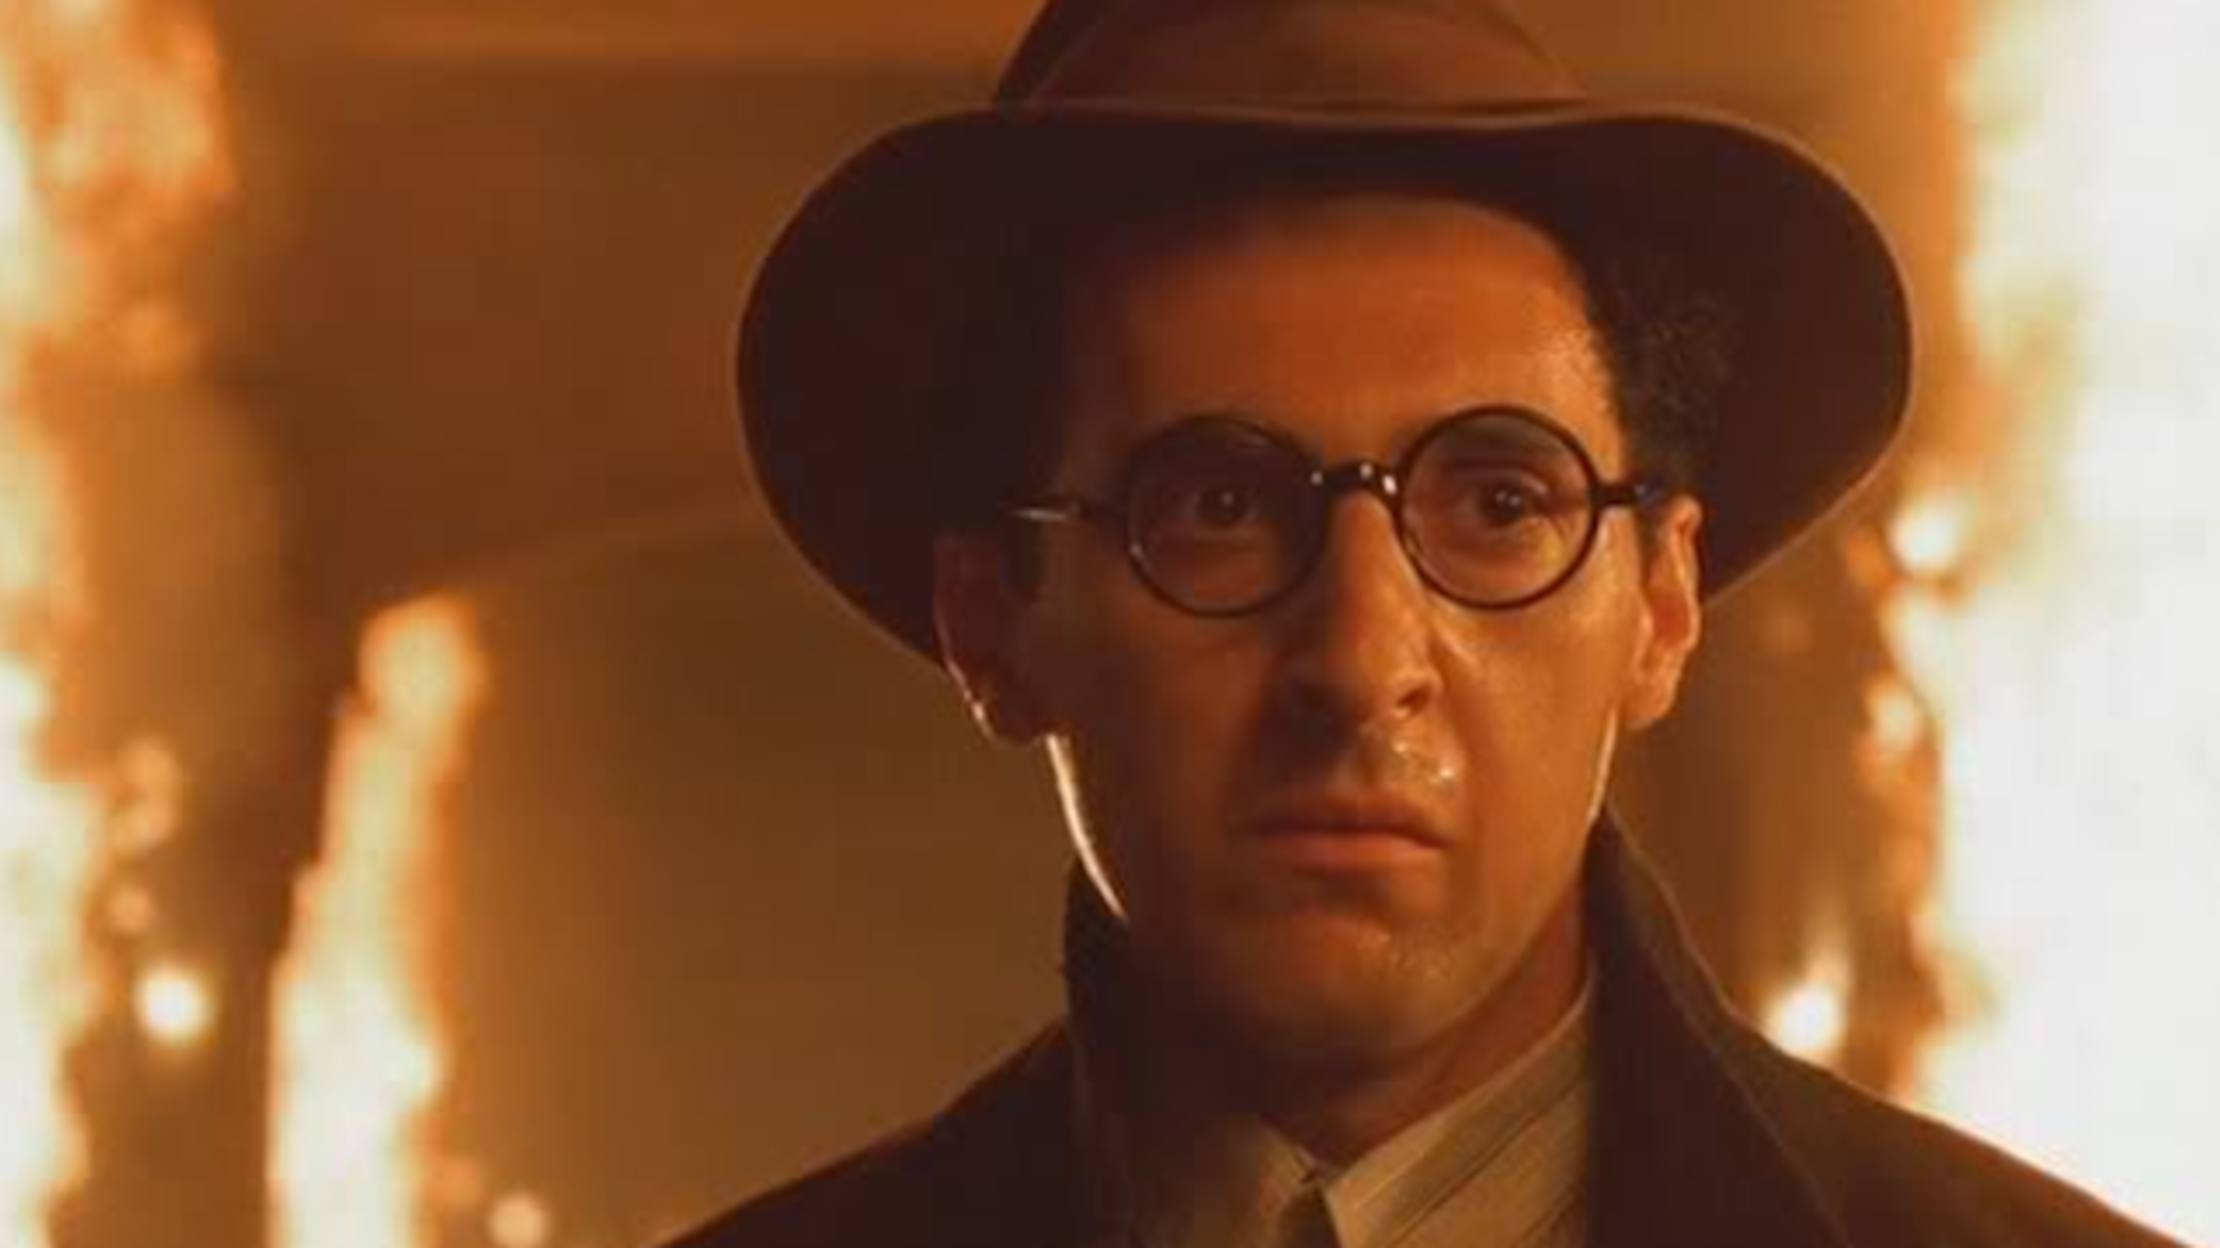 15 Fiery Facts About 'Barton Fink' | Mental Floss